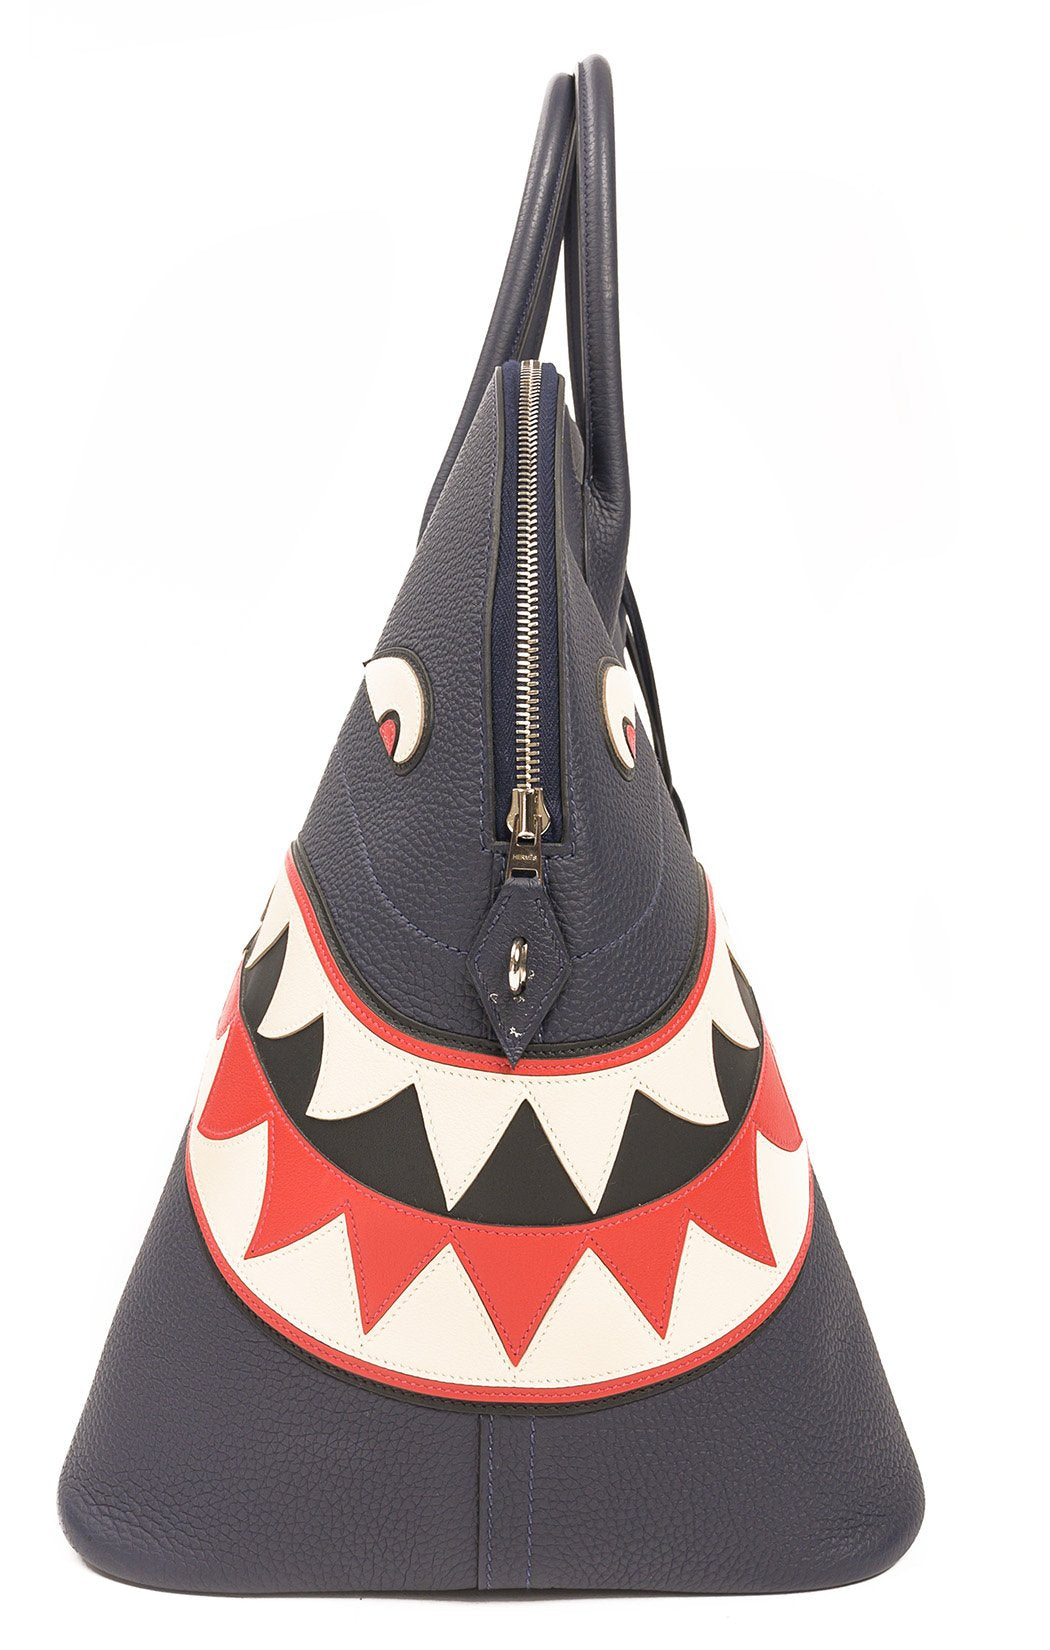 Side view of HERMES (SHARK BOLIDE) Handbag